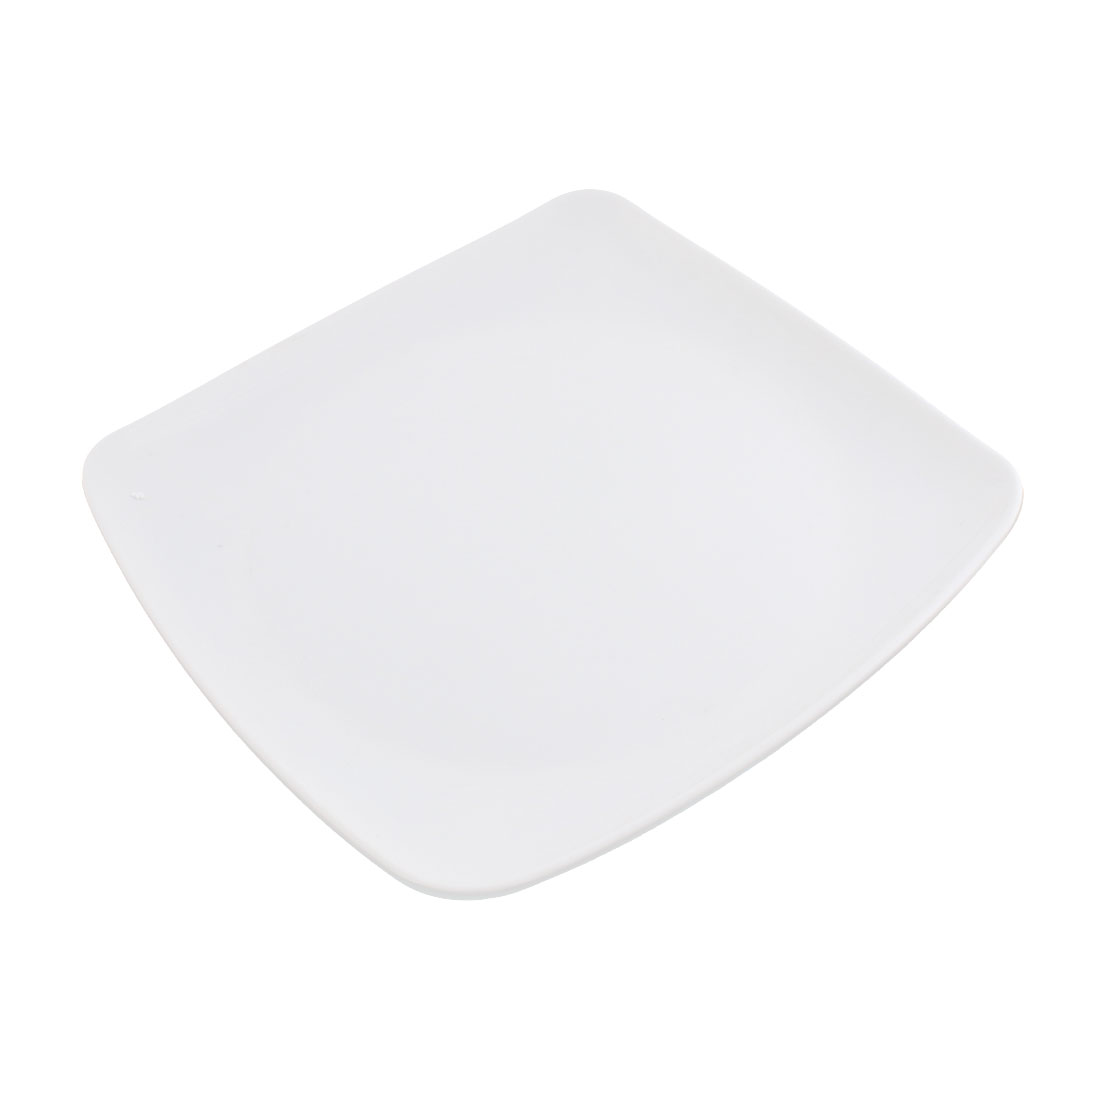 Square Shape Food Sushi Meat Plate Dish Container 24cm Length White